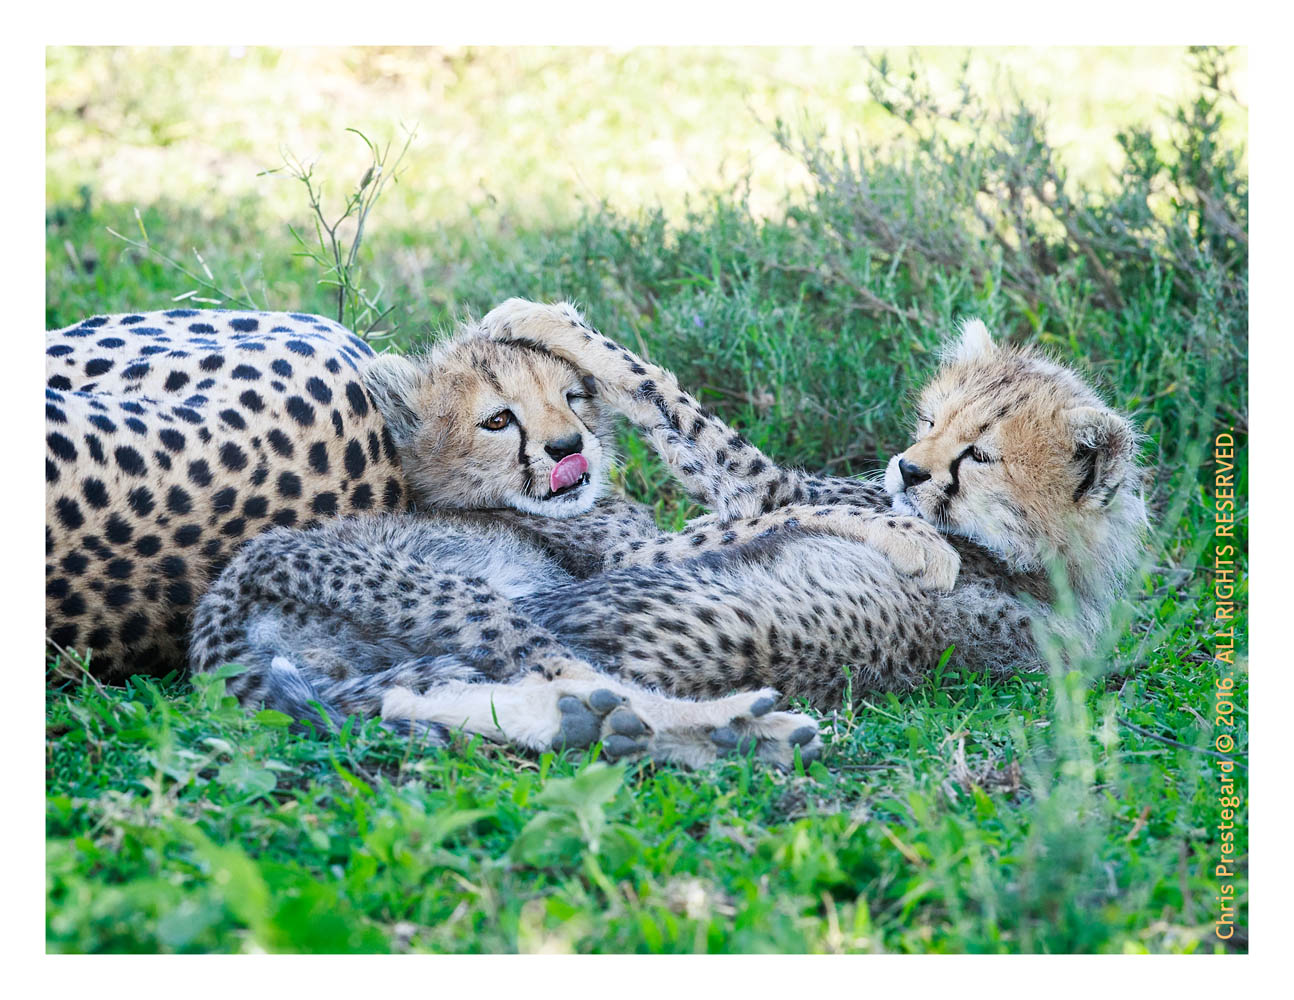 Cheetahs at Ndutu, Tanzania Feb. 2016